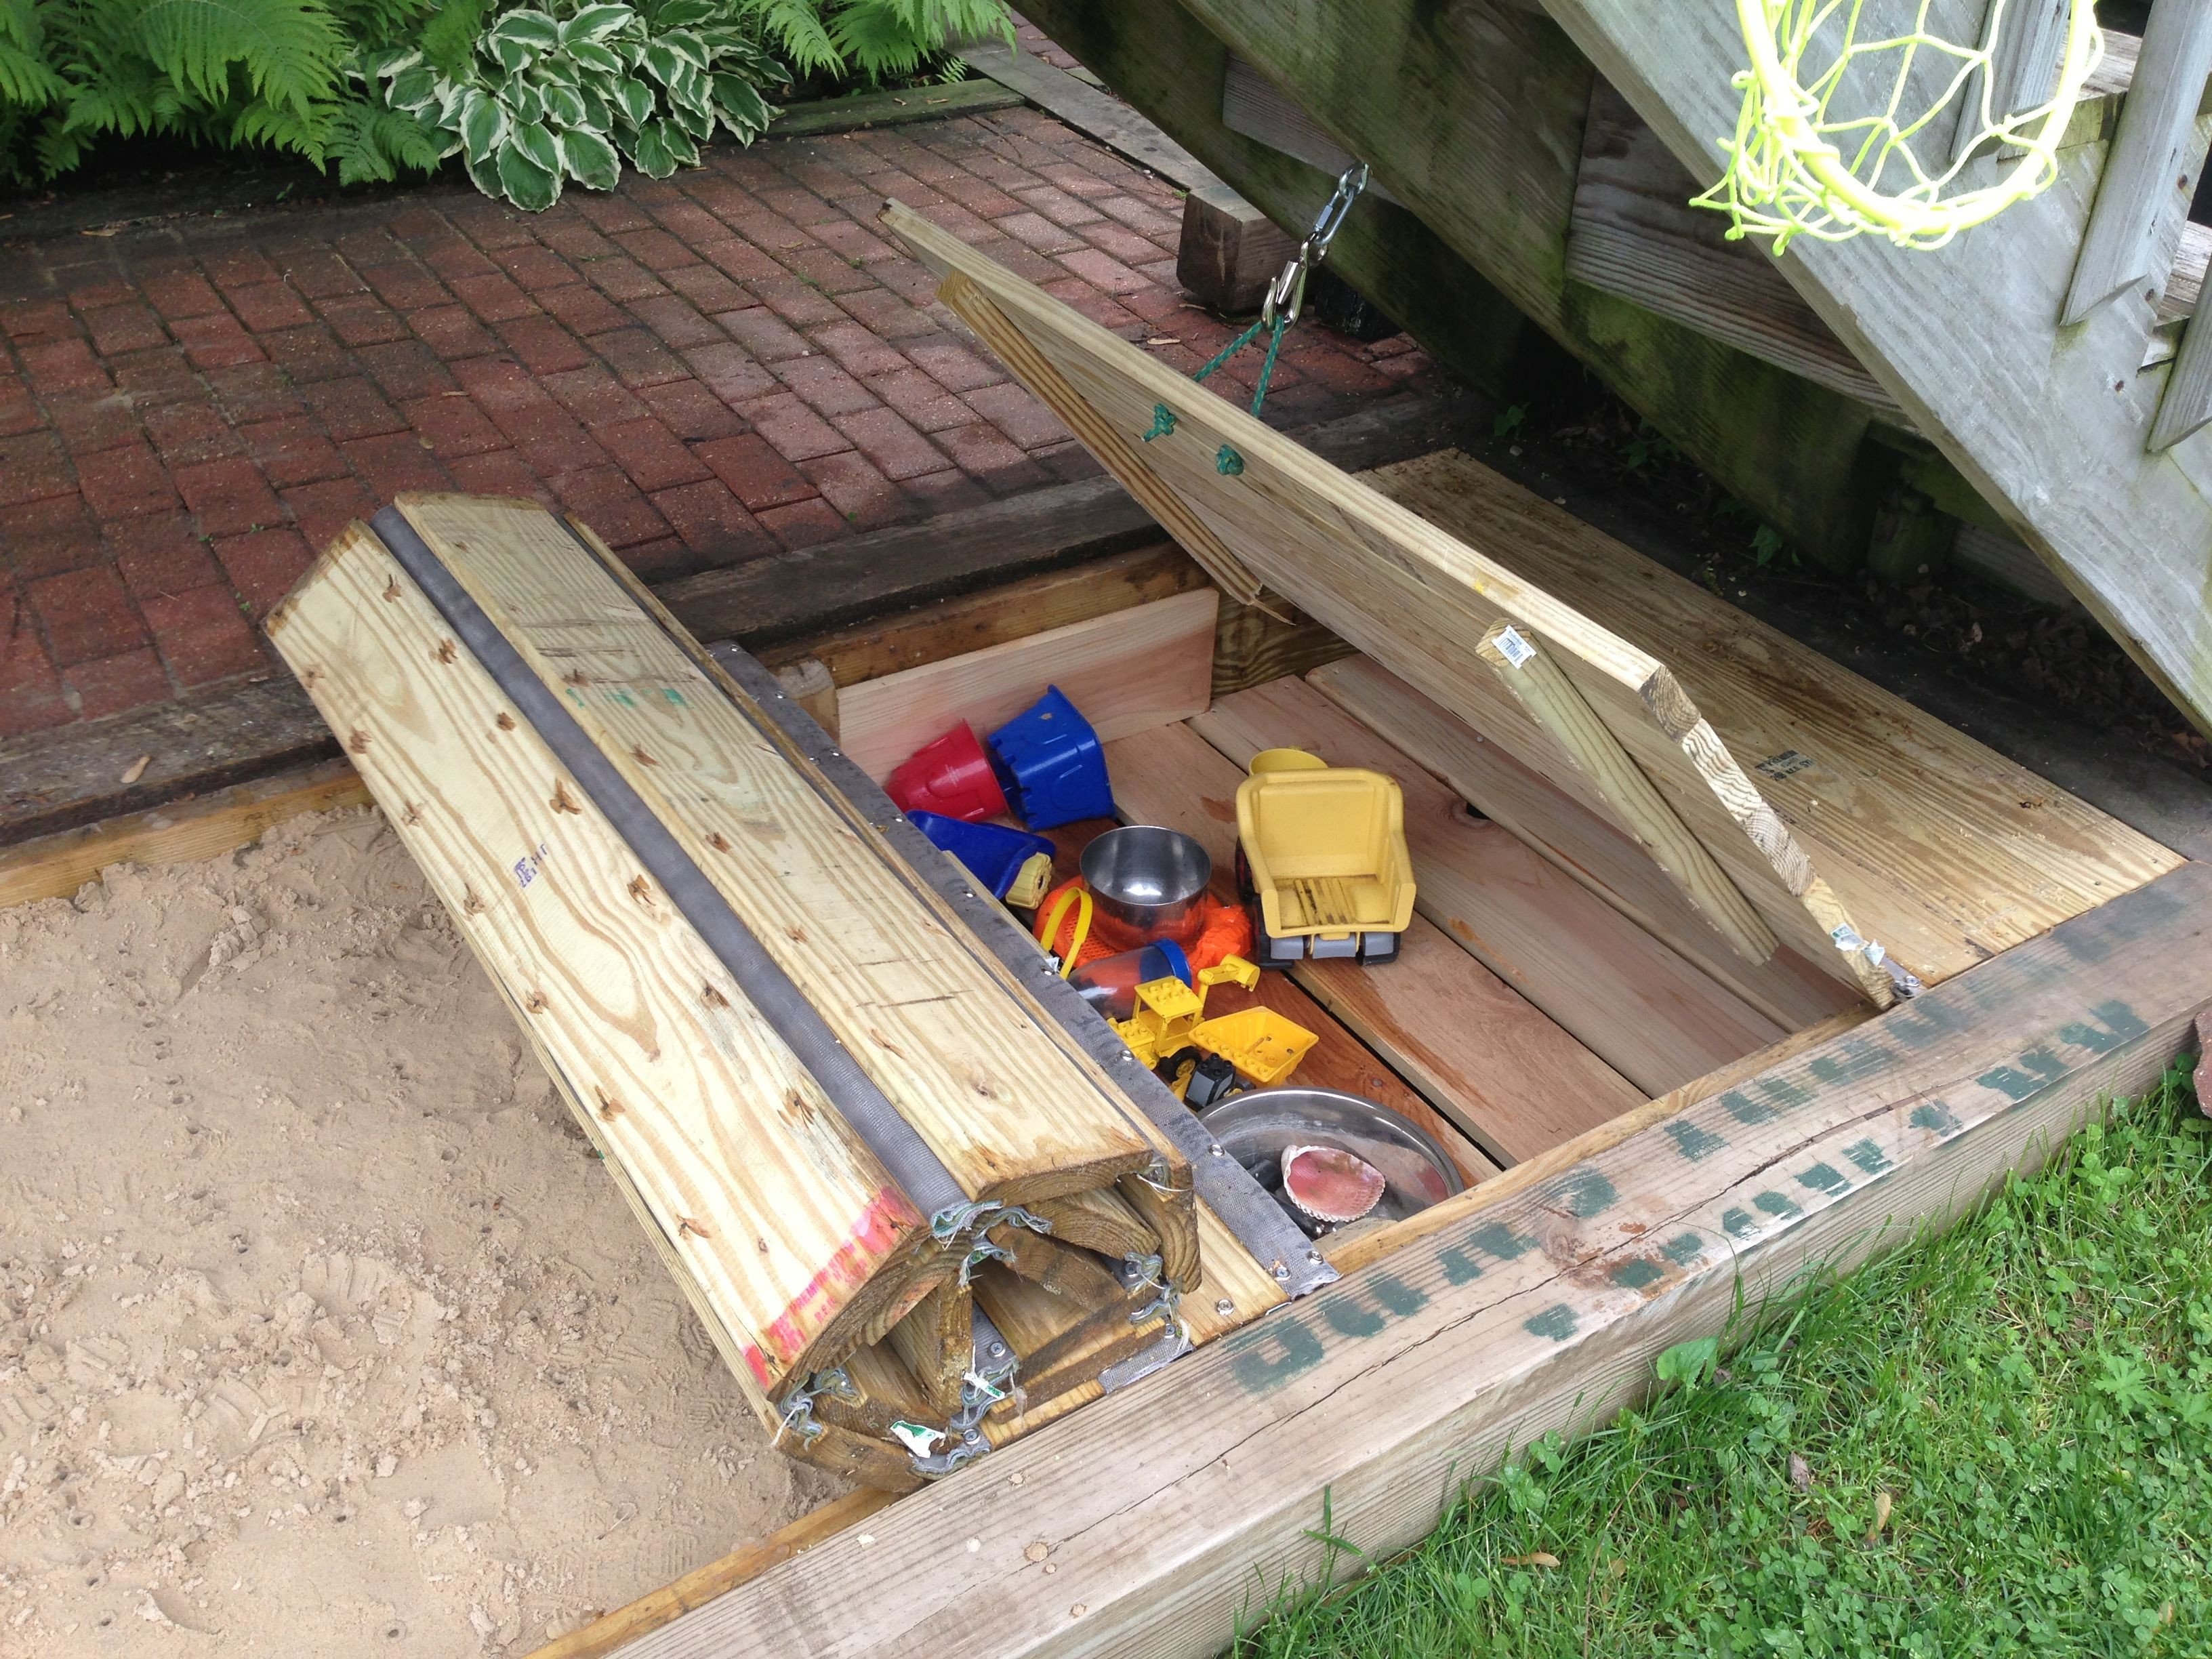 Best ideas about DIY Sandbox With Cover . Save or Pin Retractable sandbox cover w toy box Now.